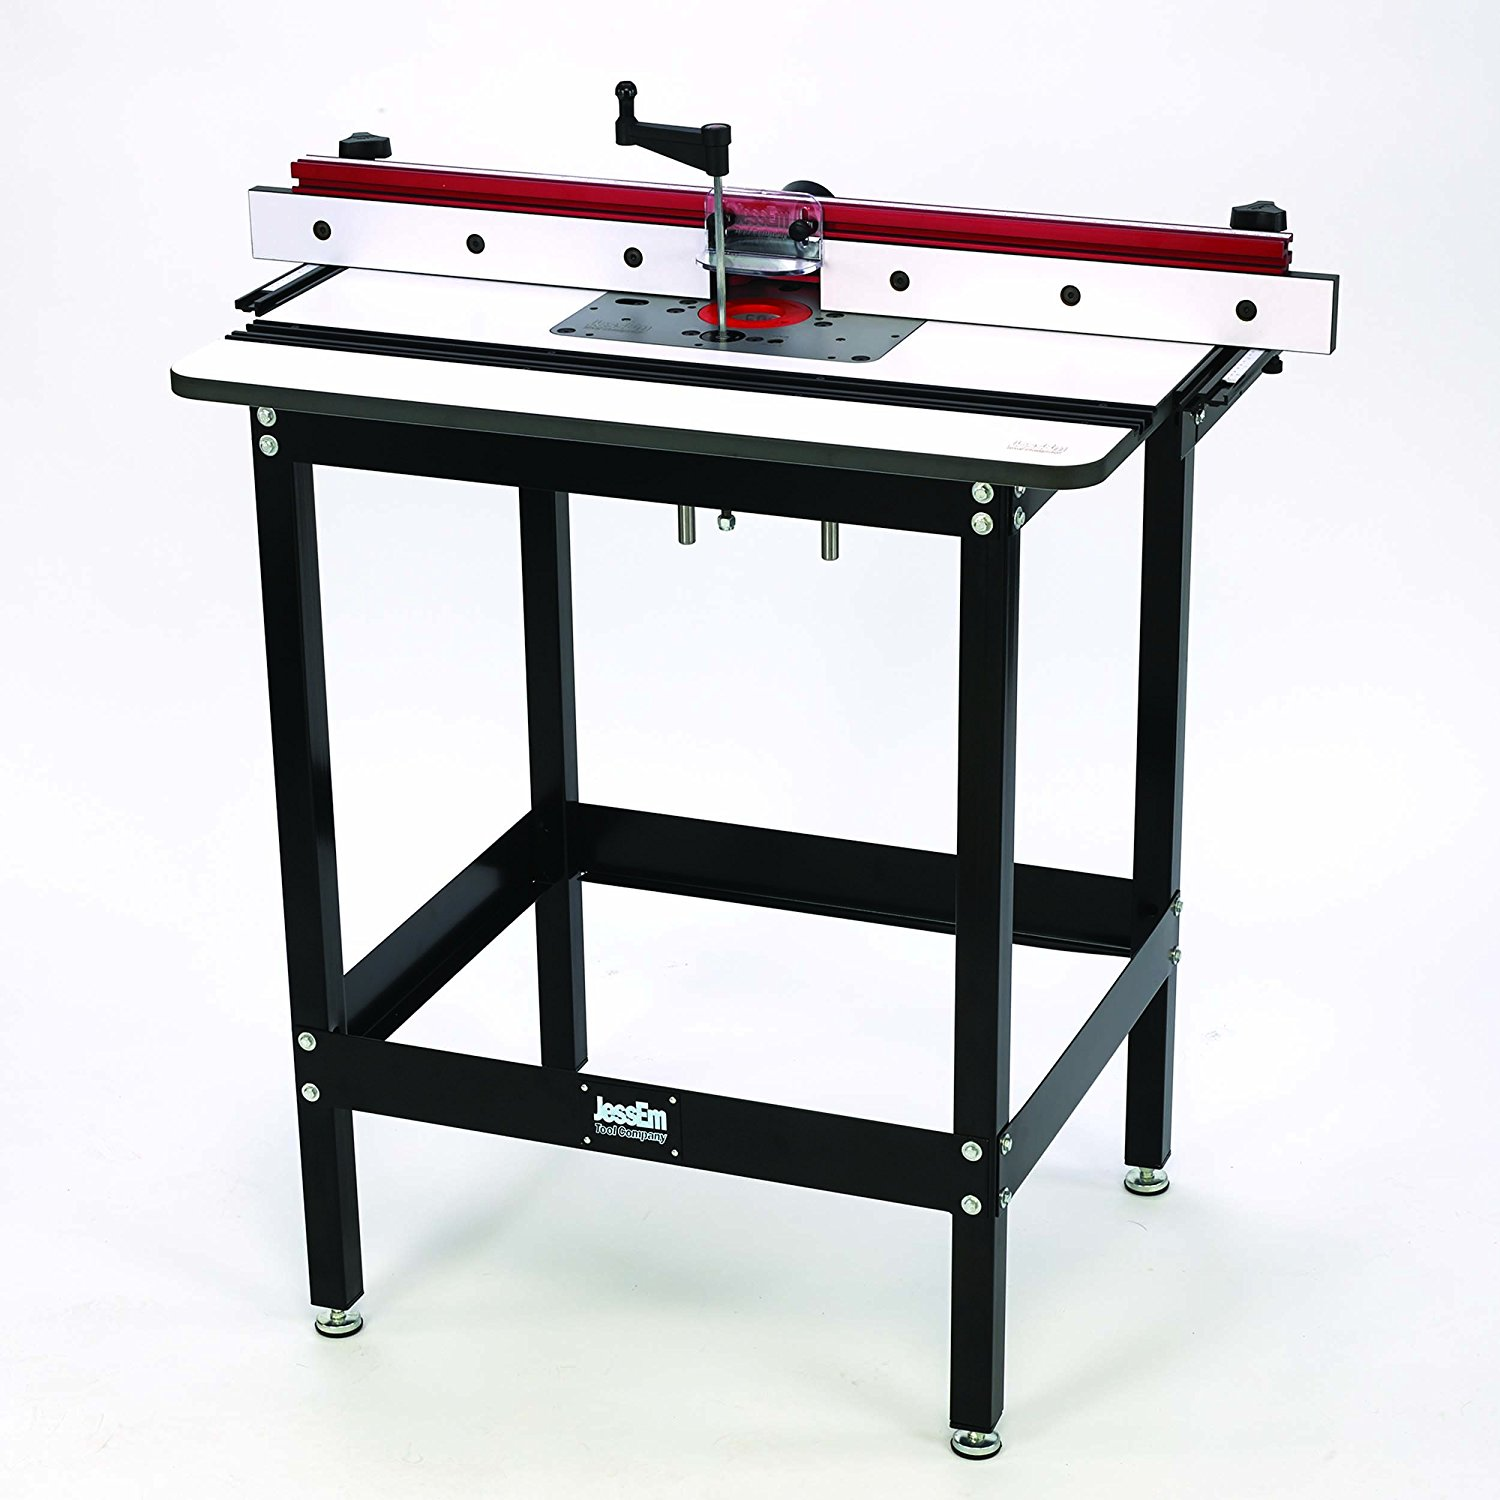 JESSEM Rout-R-Lift II Included Router Table System With Phenolic Top